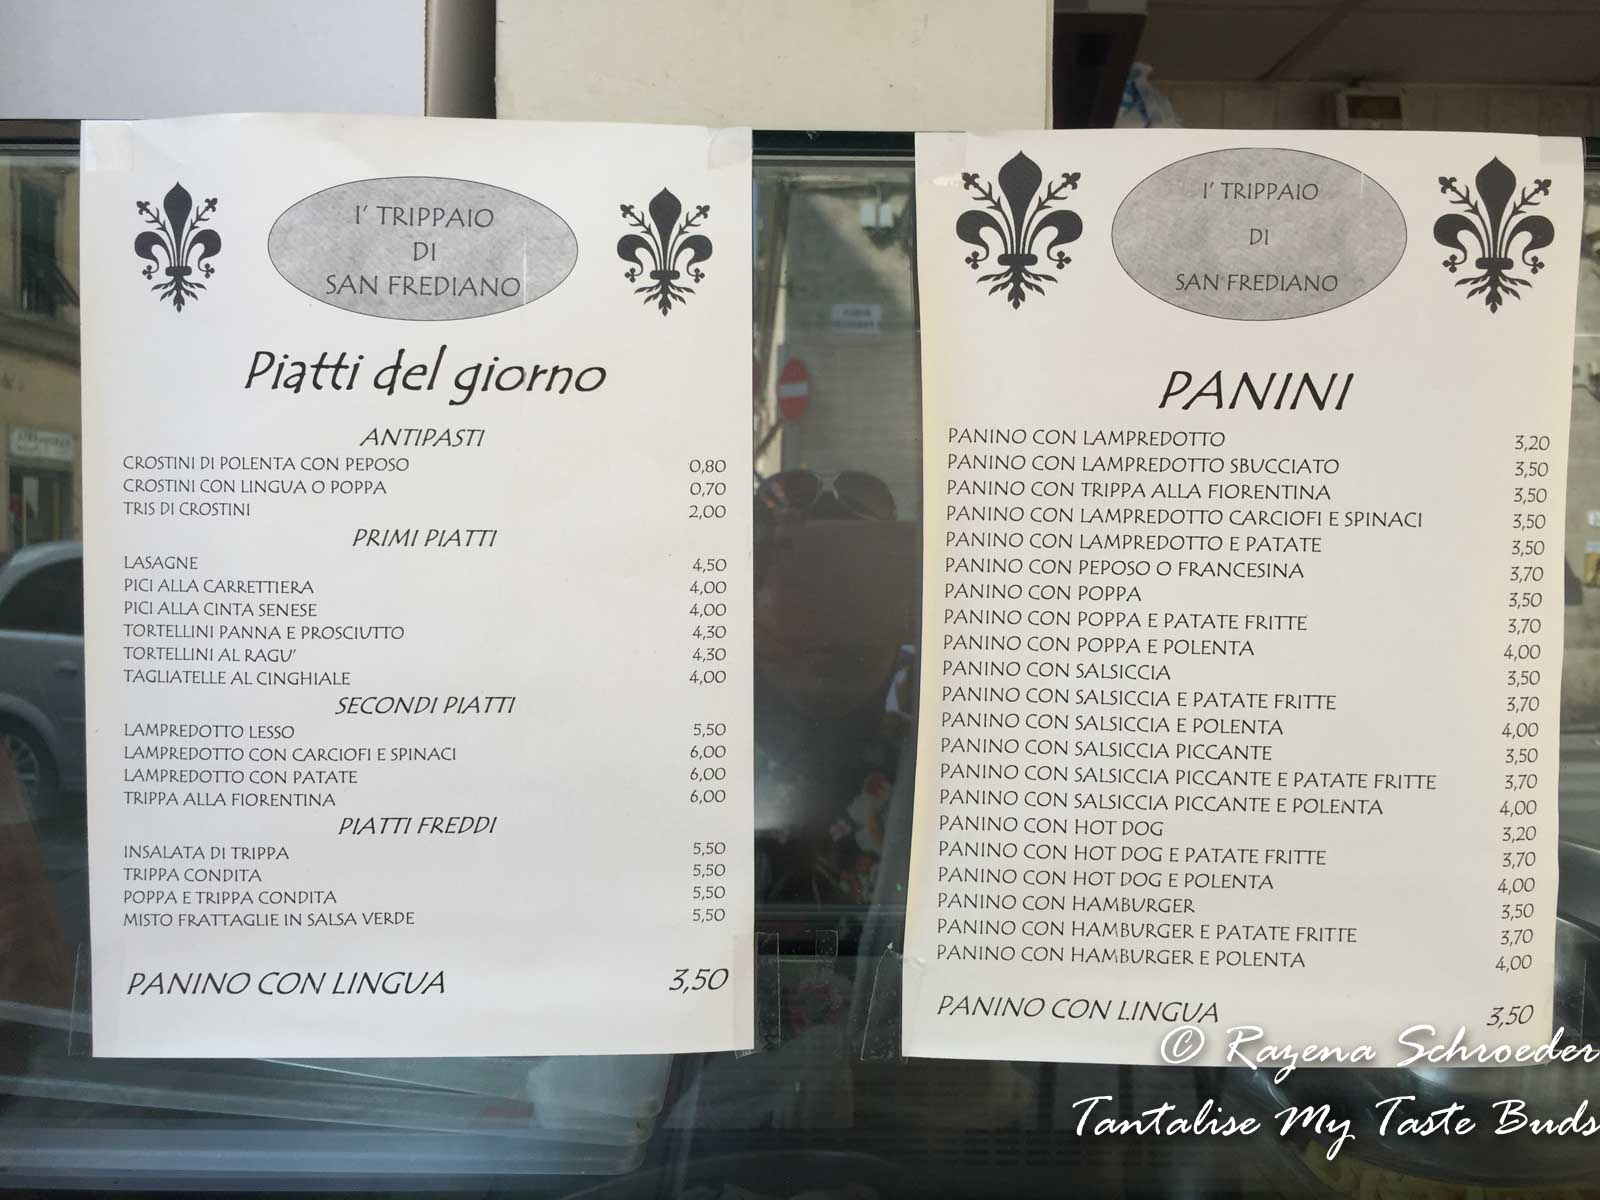 I' Trippaio di San Frediano menu on Florence food tour